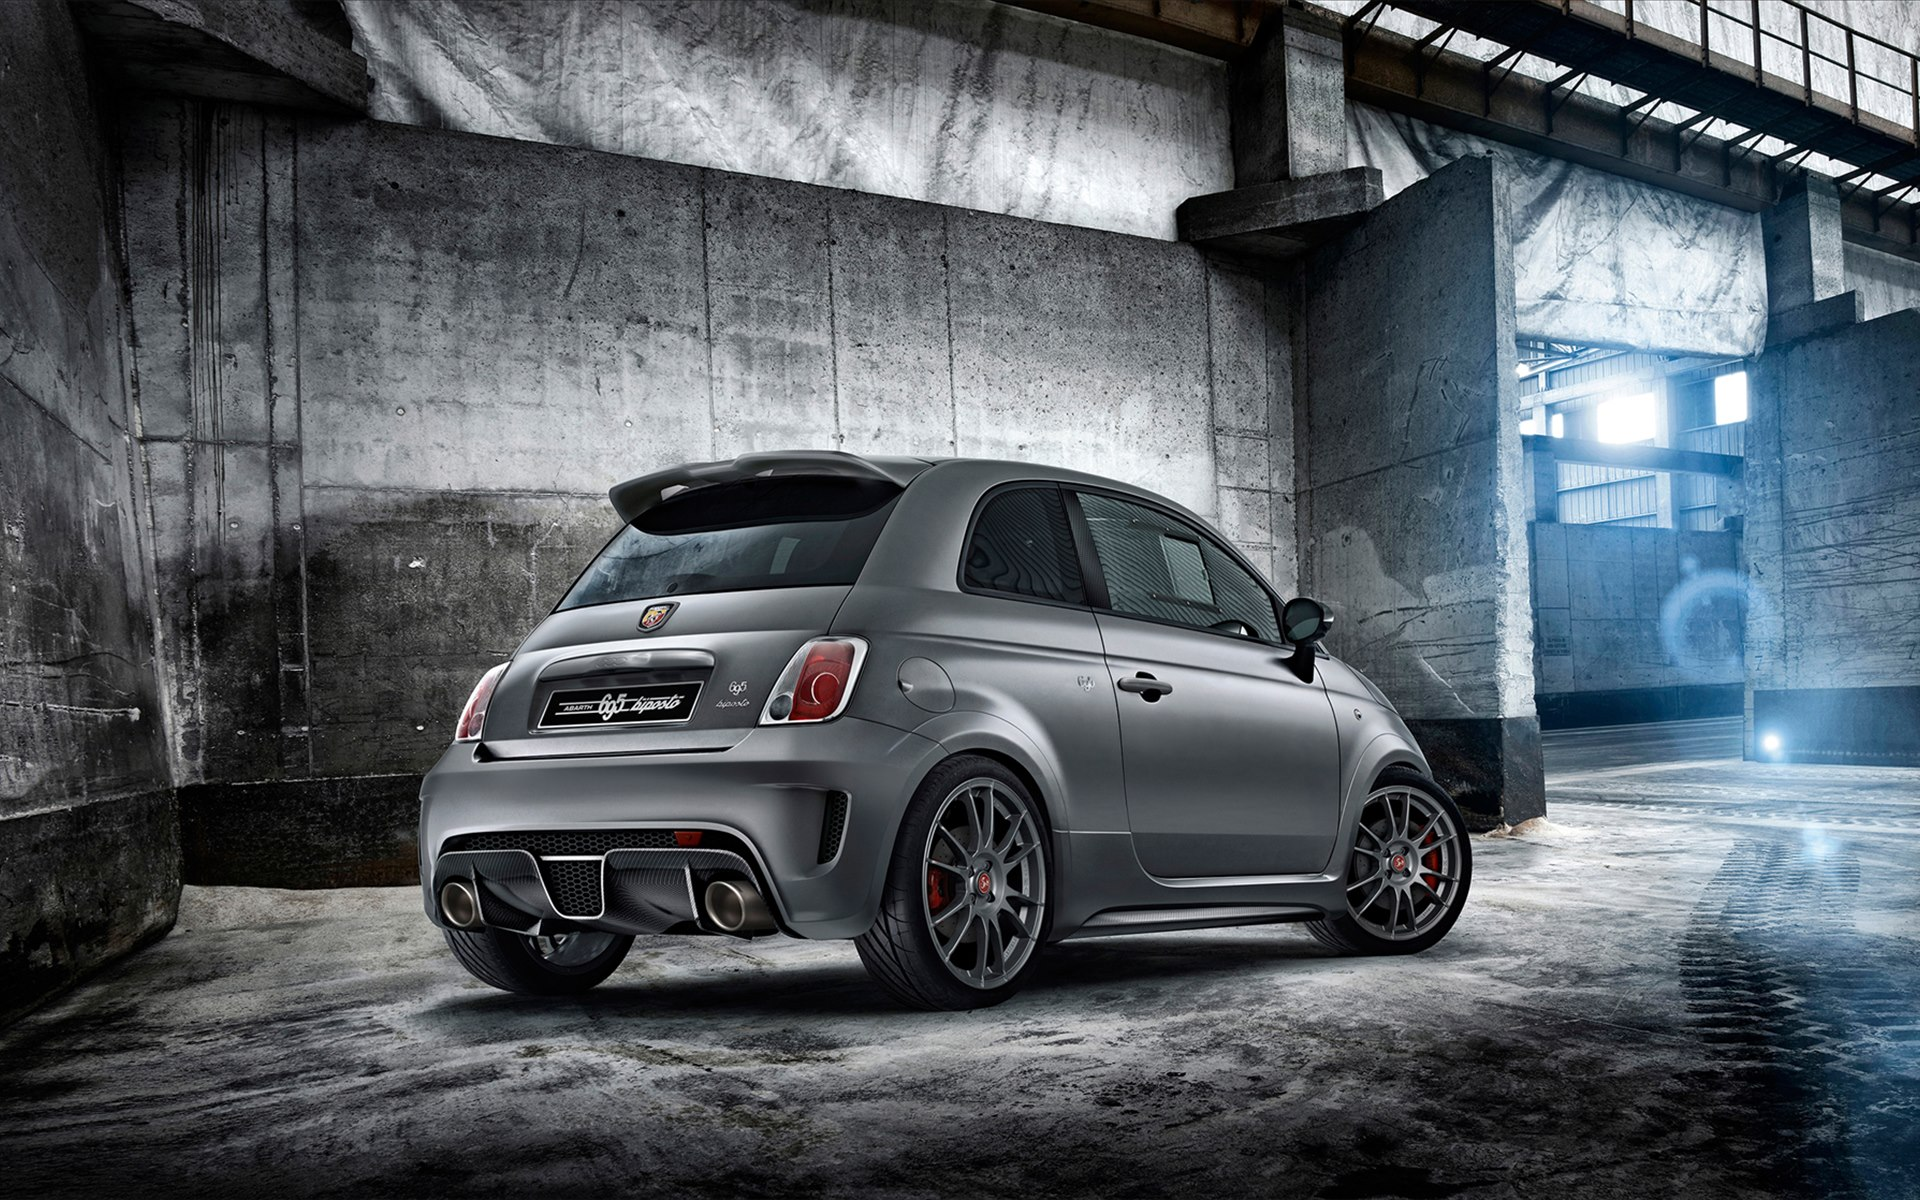 2014 fiat abarth 695 biposto 2 wallpaper hd car. Black Bedroom Furniture Sets. Home Design Ideas